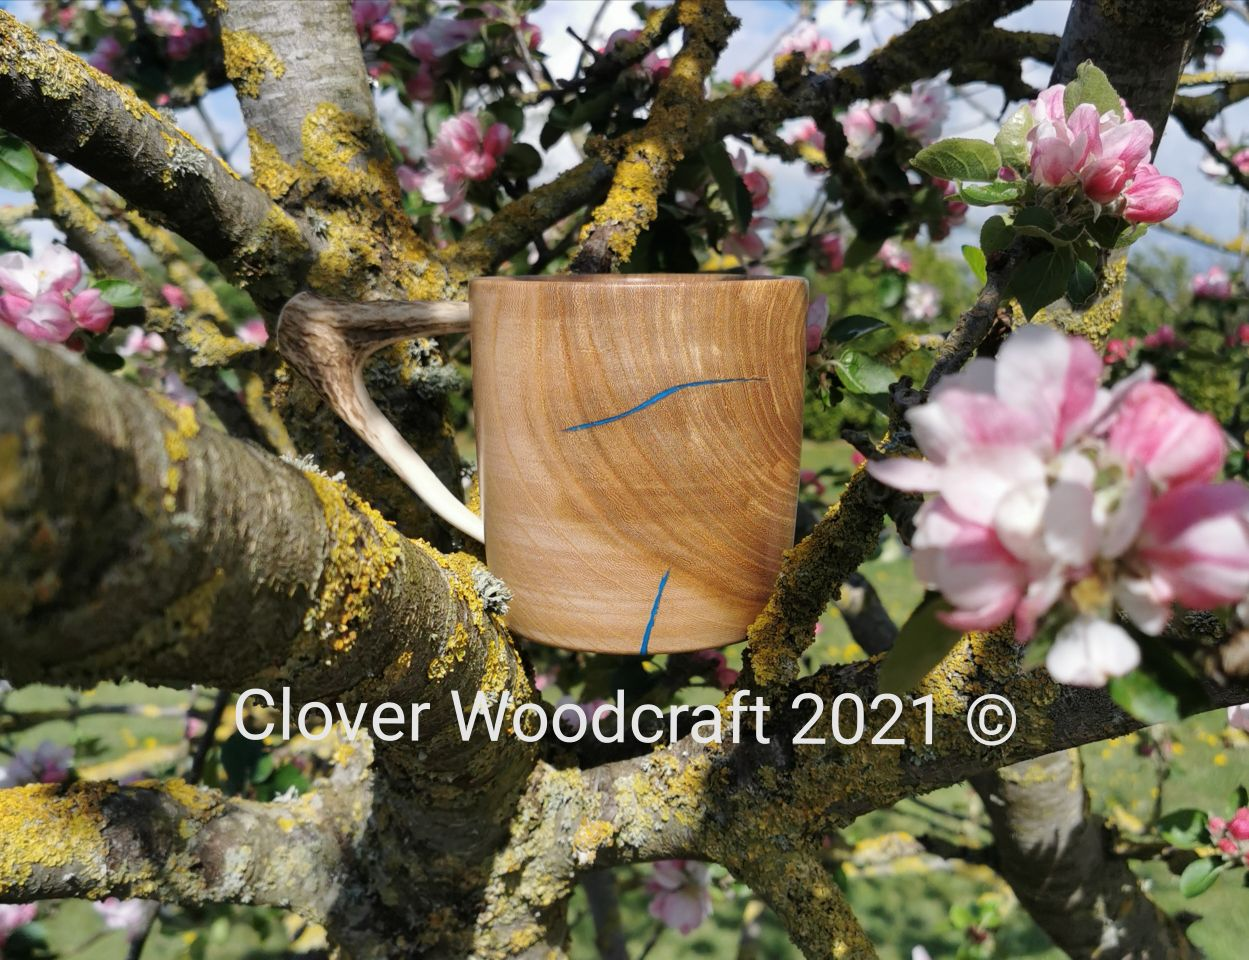 Handmade Irish Elm Wood Mug featuring Deer Antler handle.